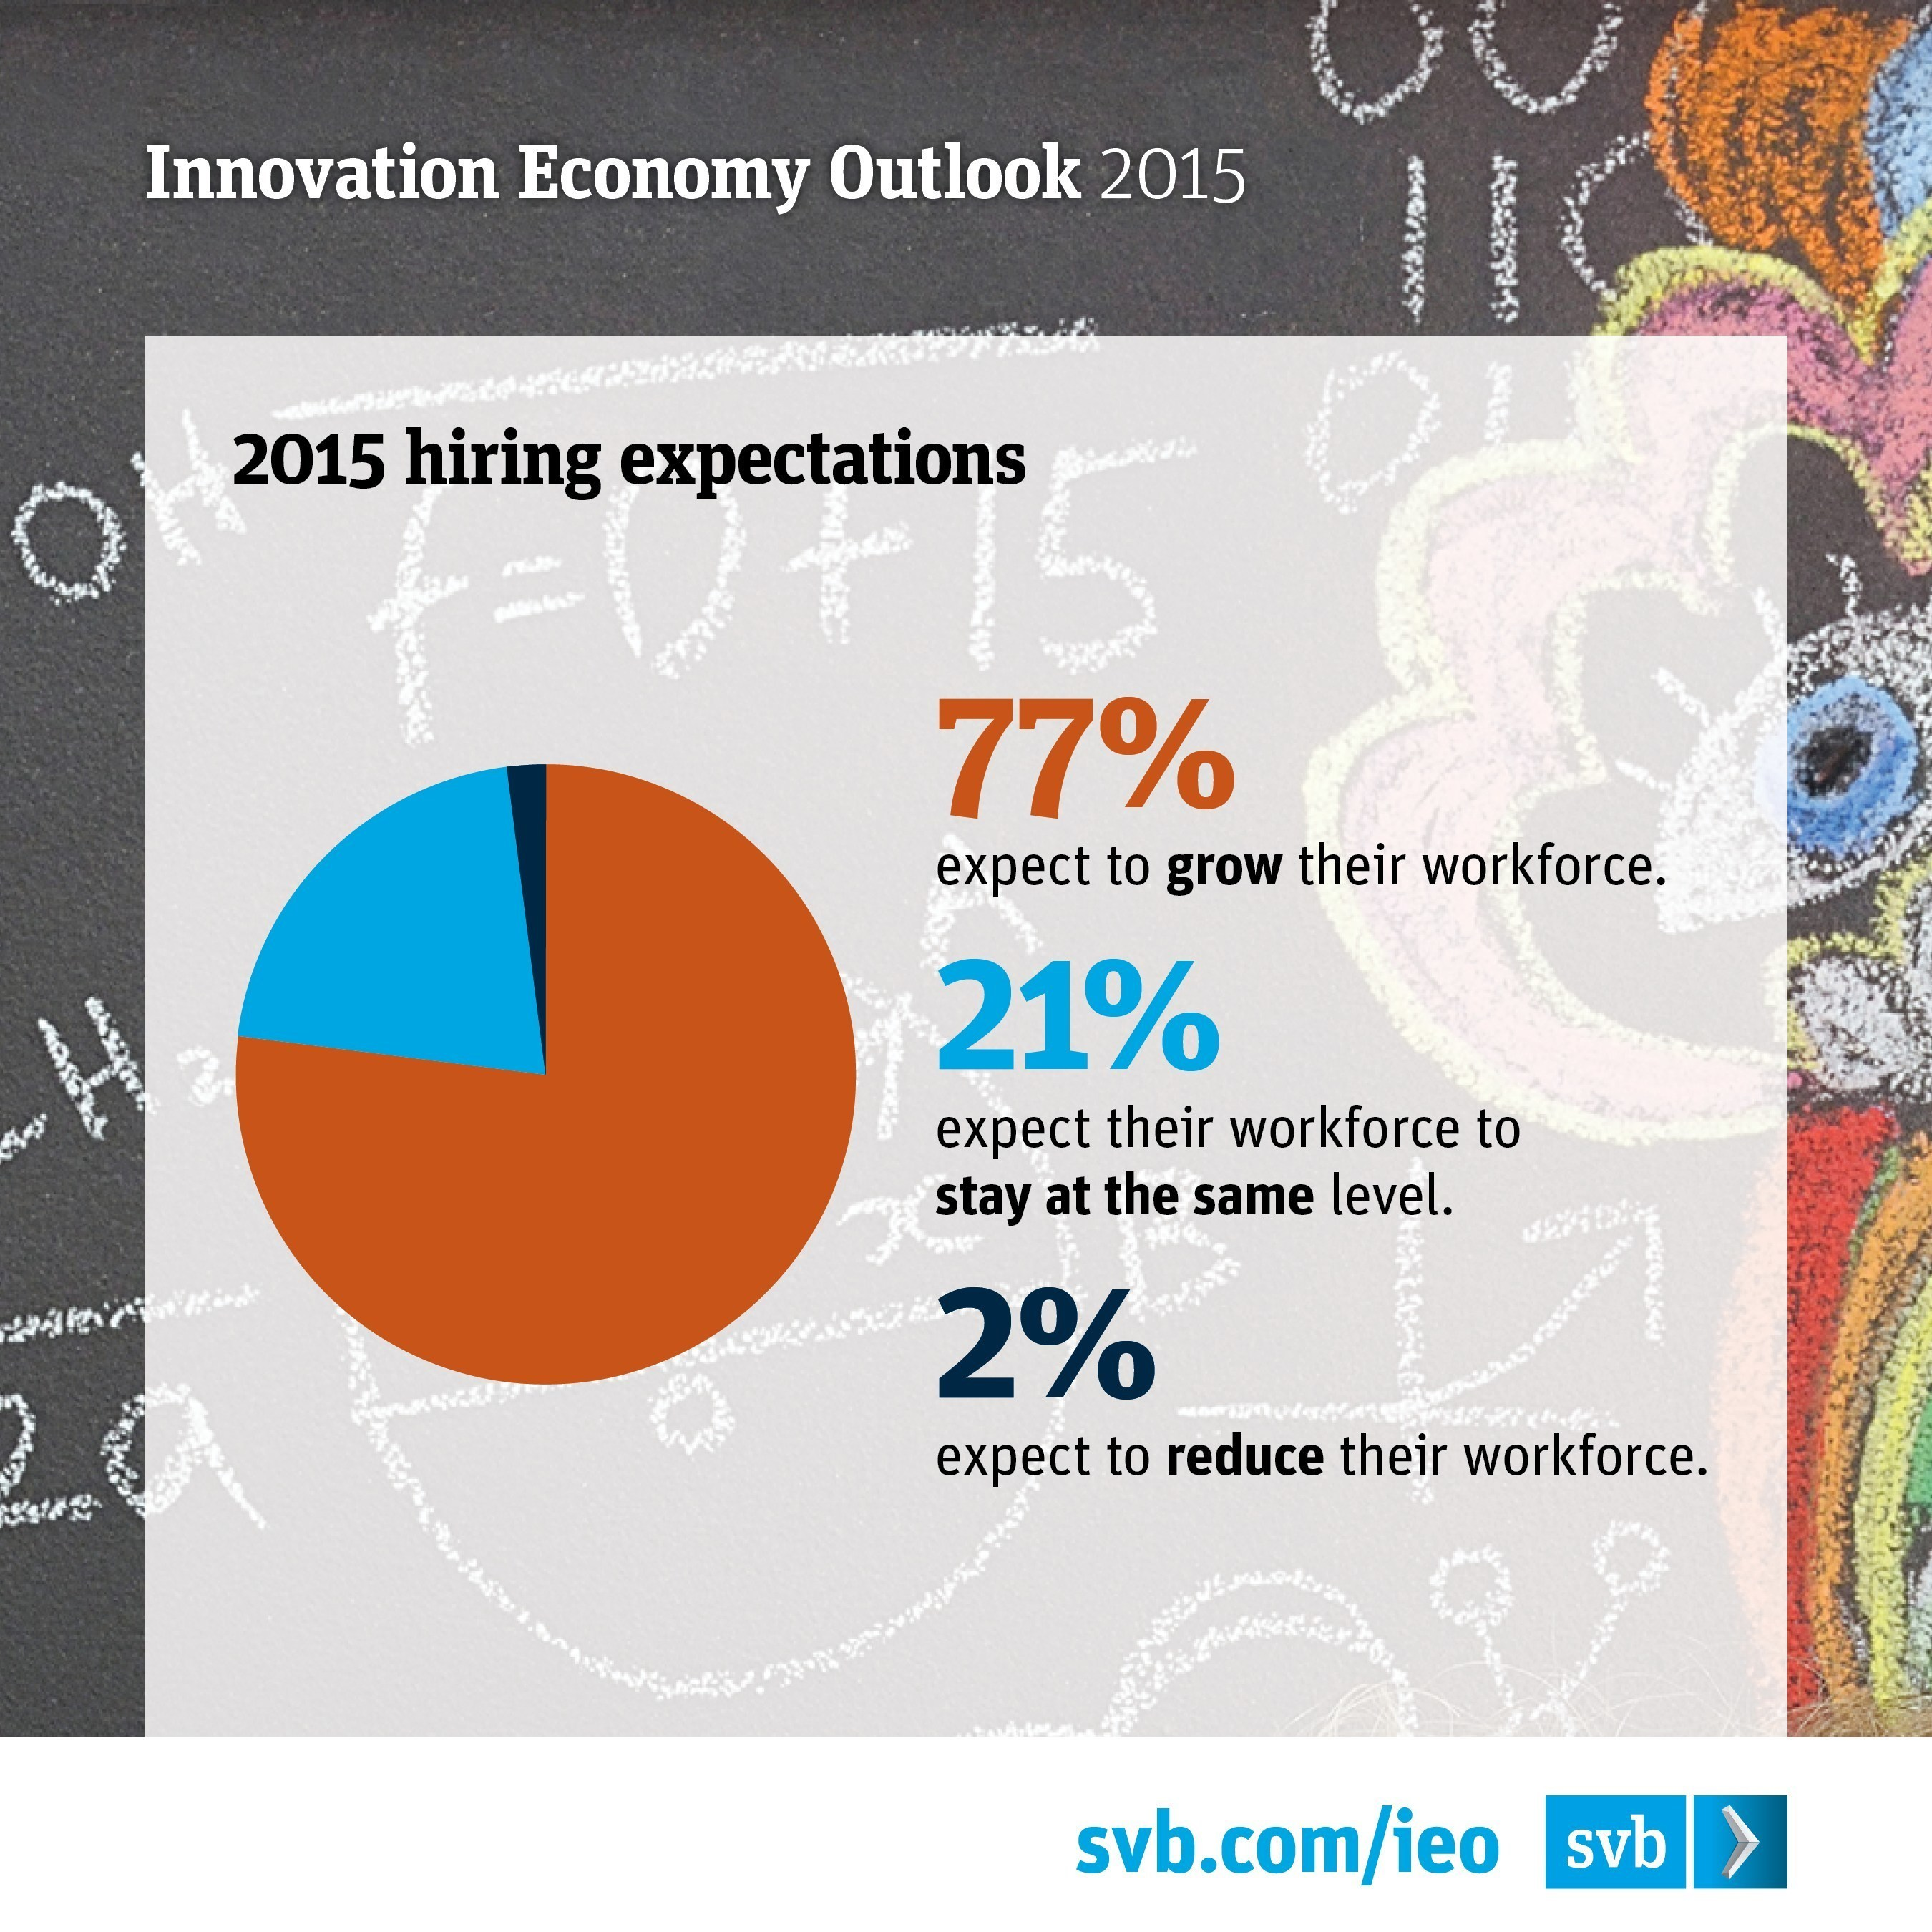 Silicon Valley Bank Survey 2015 Infographic